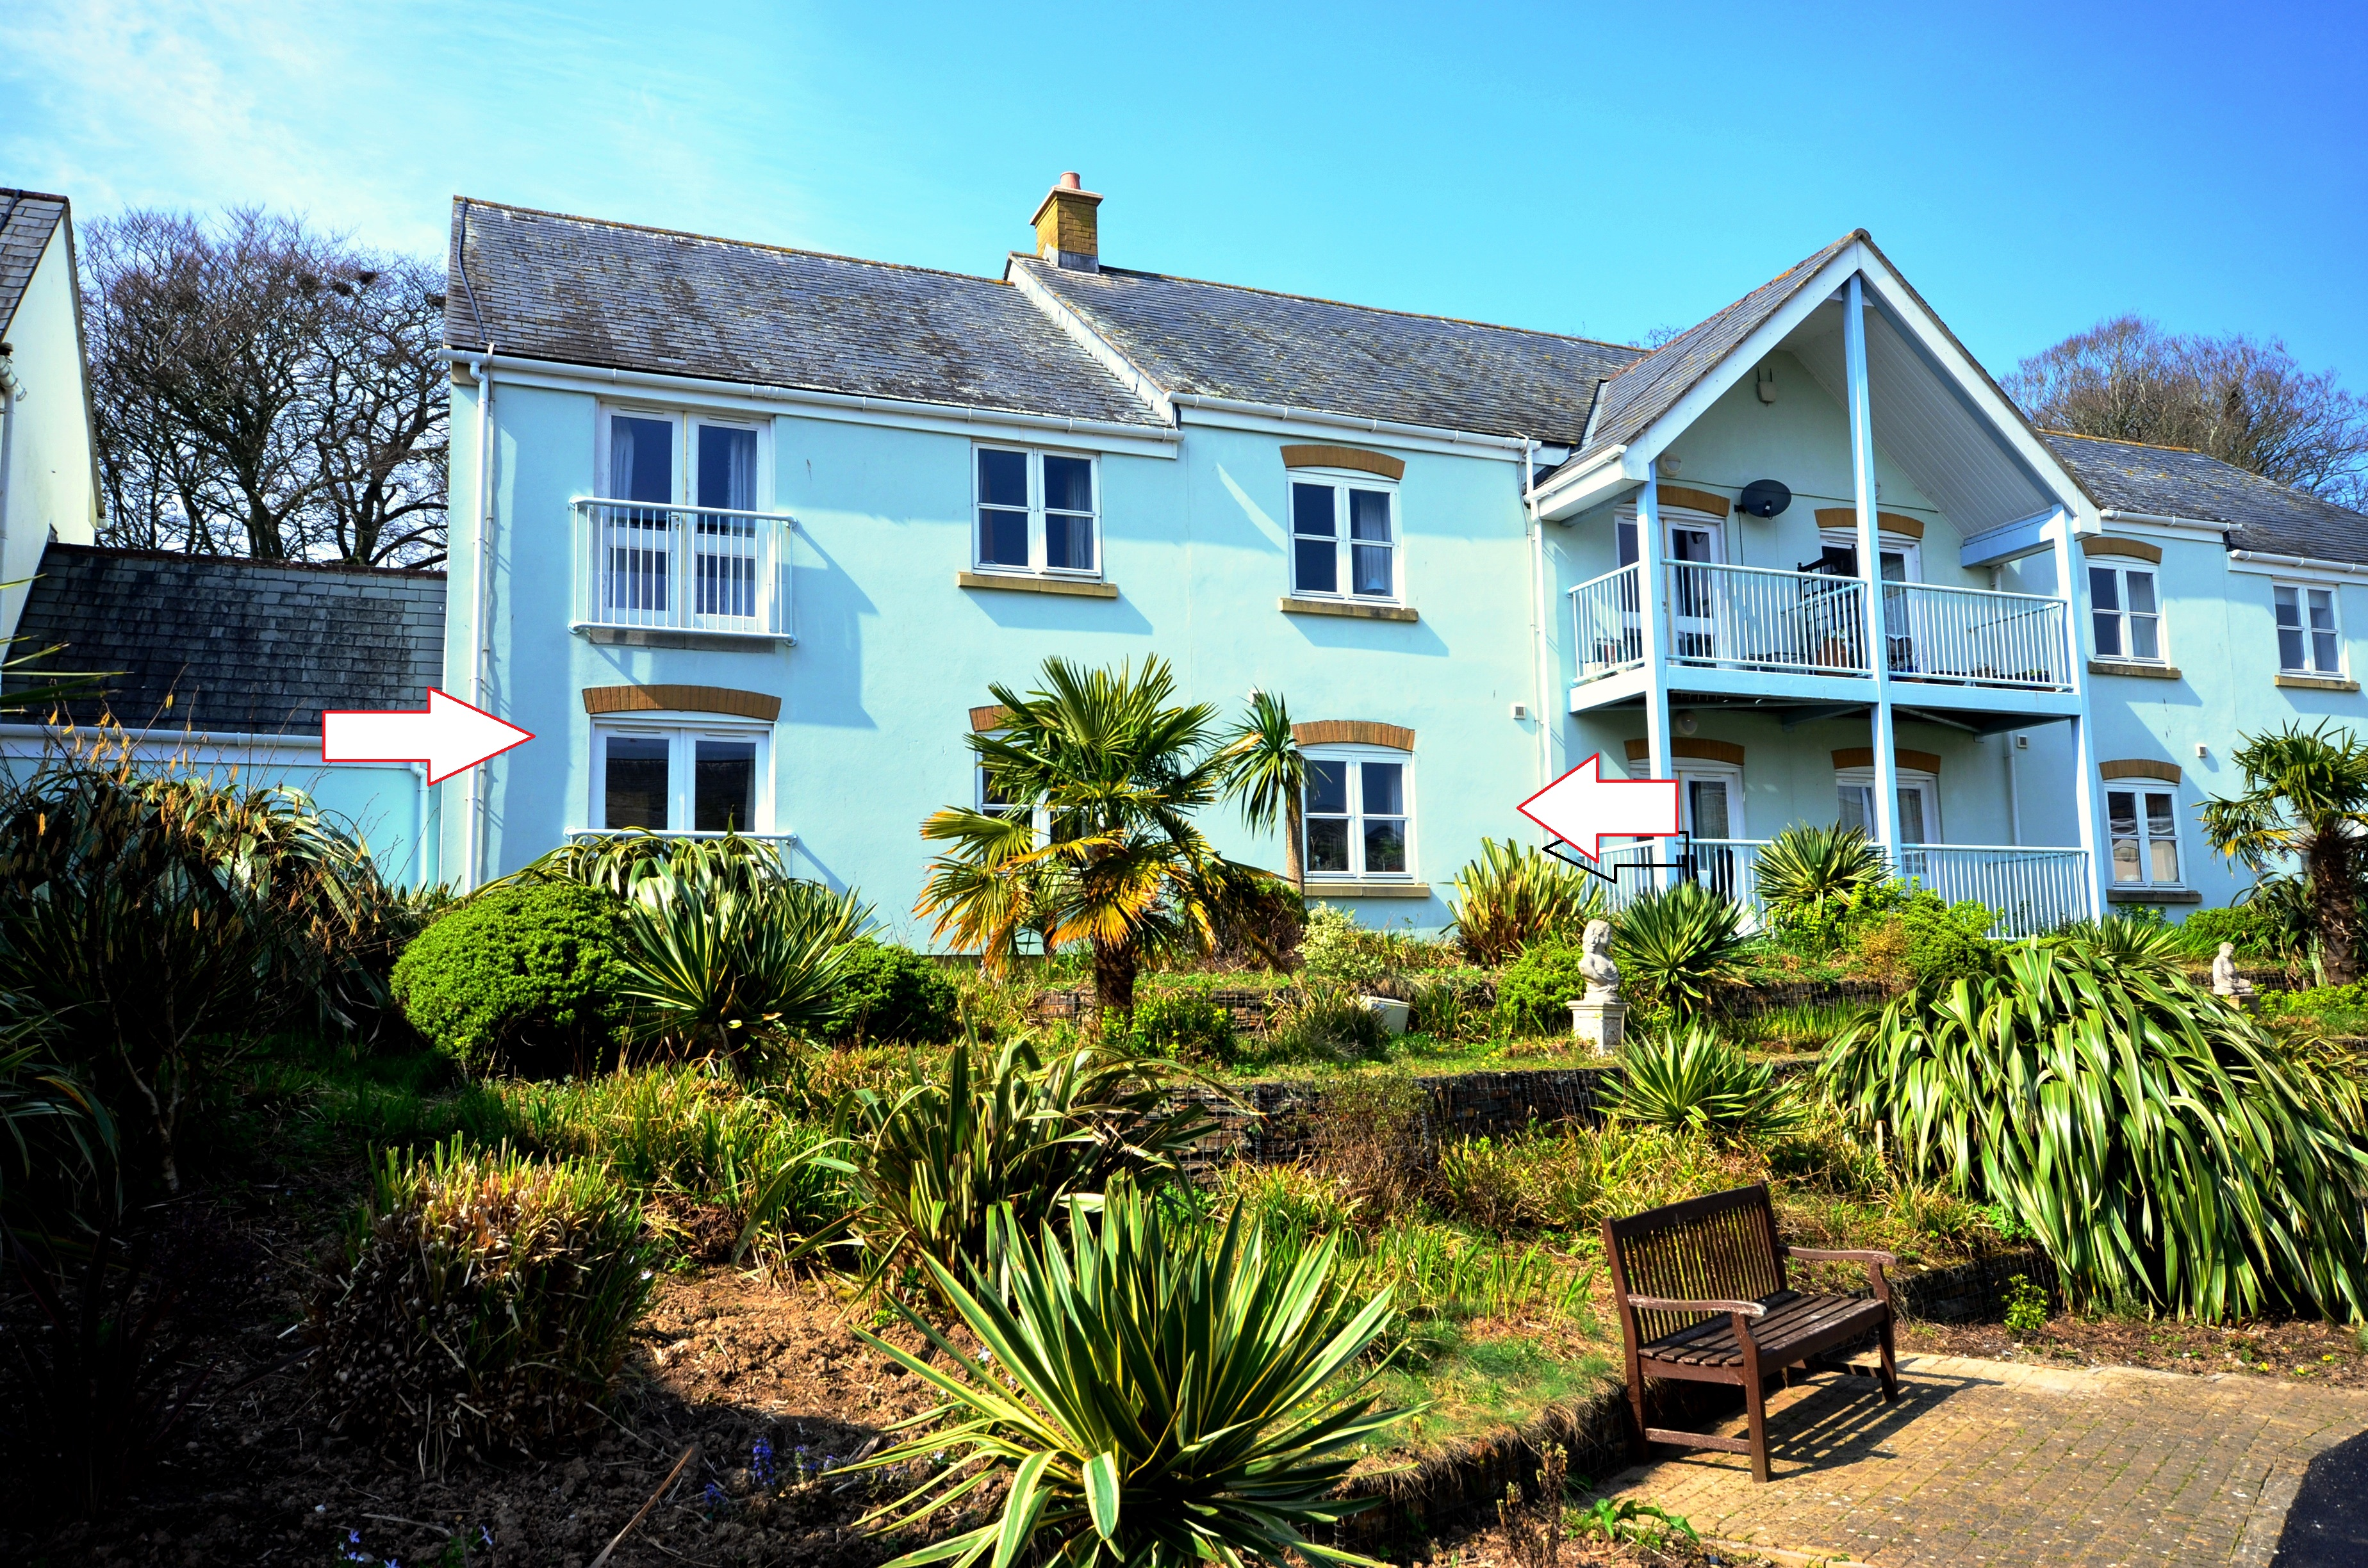 8 St Anthony House | Roseland Parc, Truro | Retirement Villages